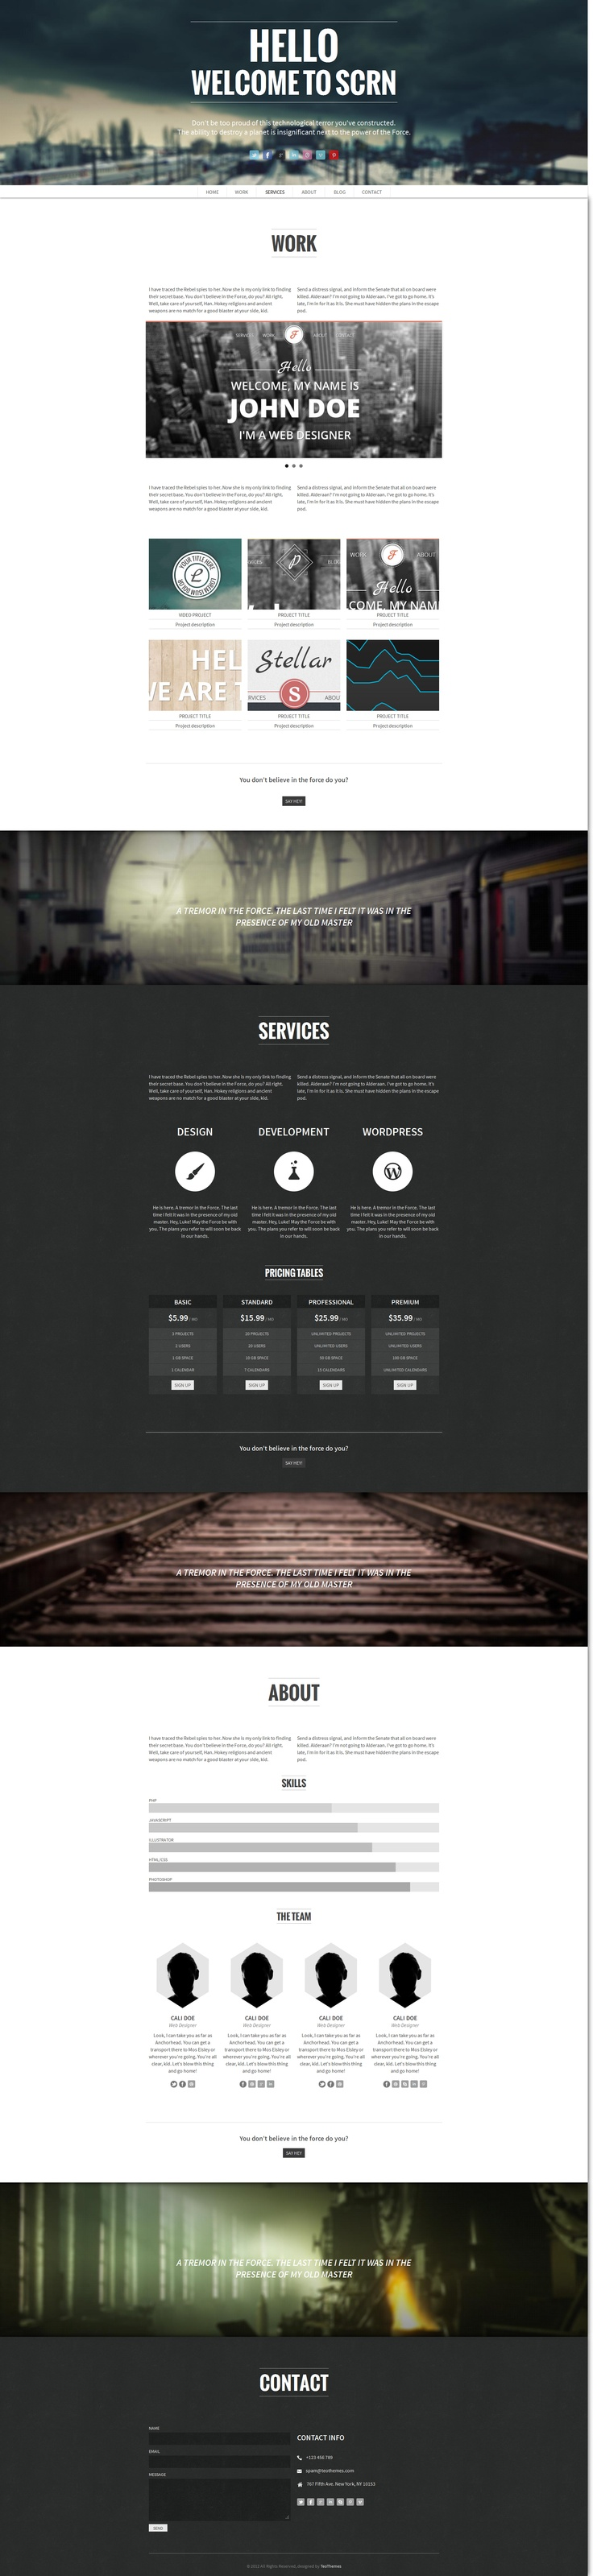 Webdesign | #webdesign #it #web #design #layout #userinterface #website…